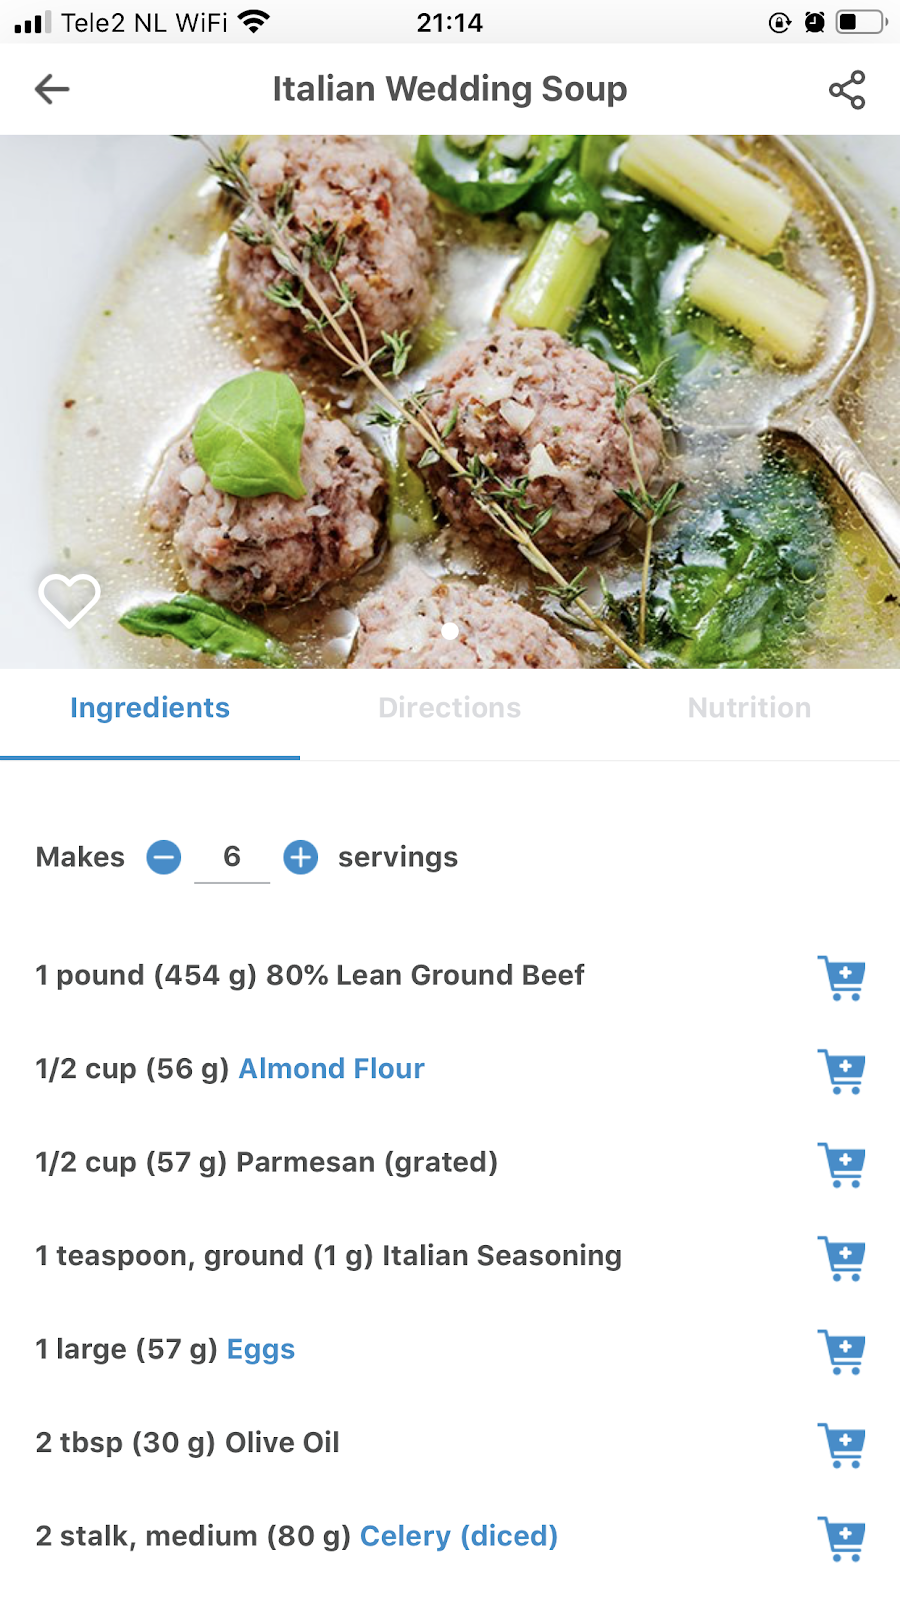 Keto app - Total Keto Diet